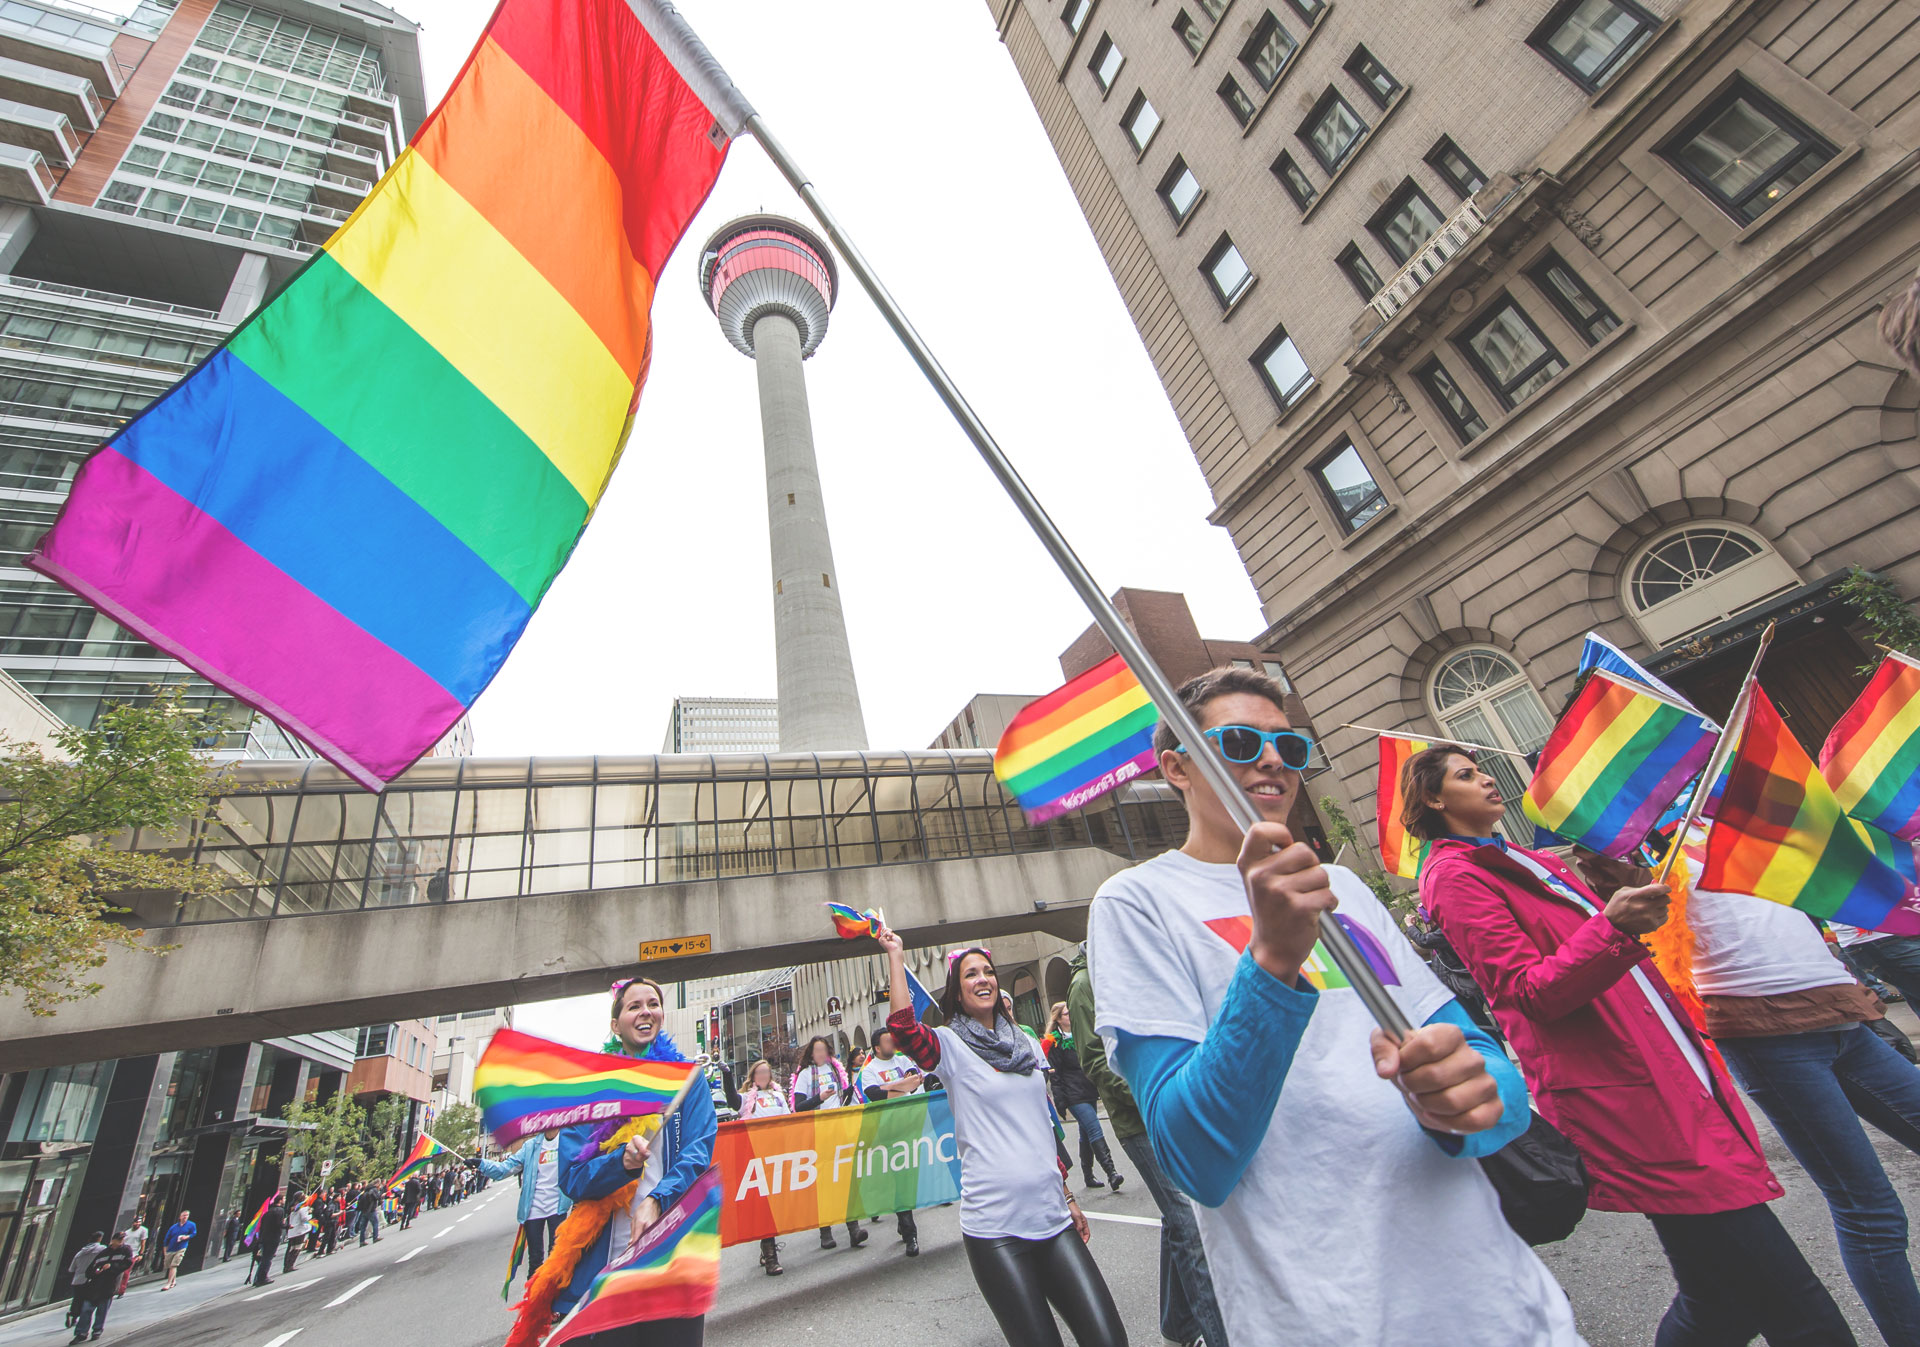 Celebrate LGBT diversity at the Calgary Pride Festival (Photo Credit: Neil Zeller).